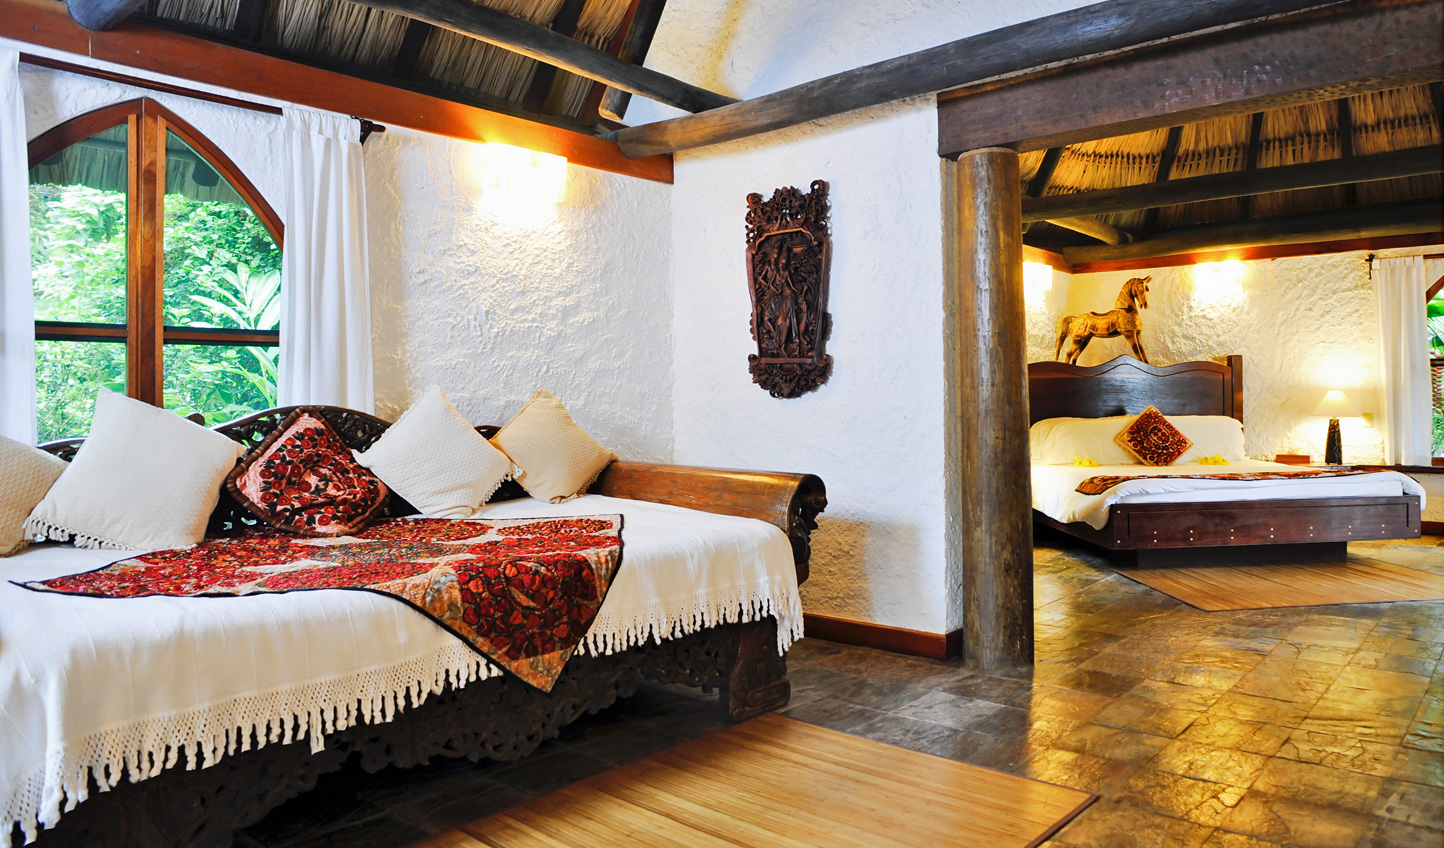 Stay in one of the traditional Macal Cottages